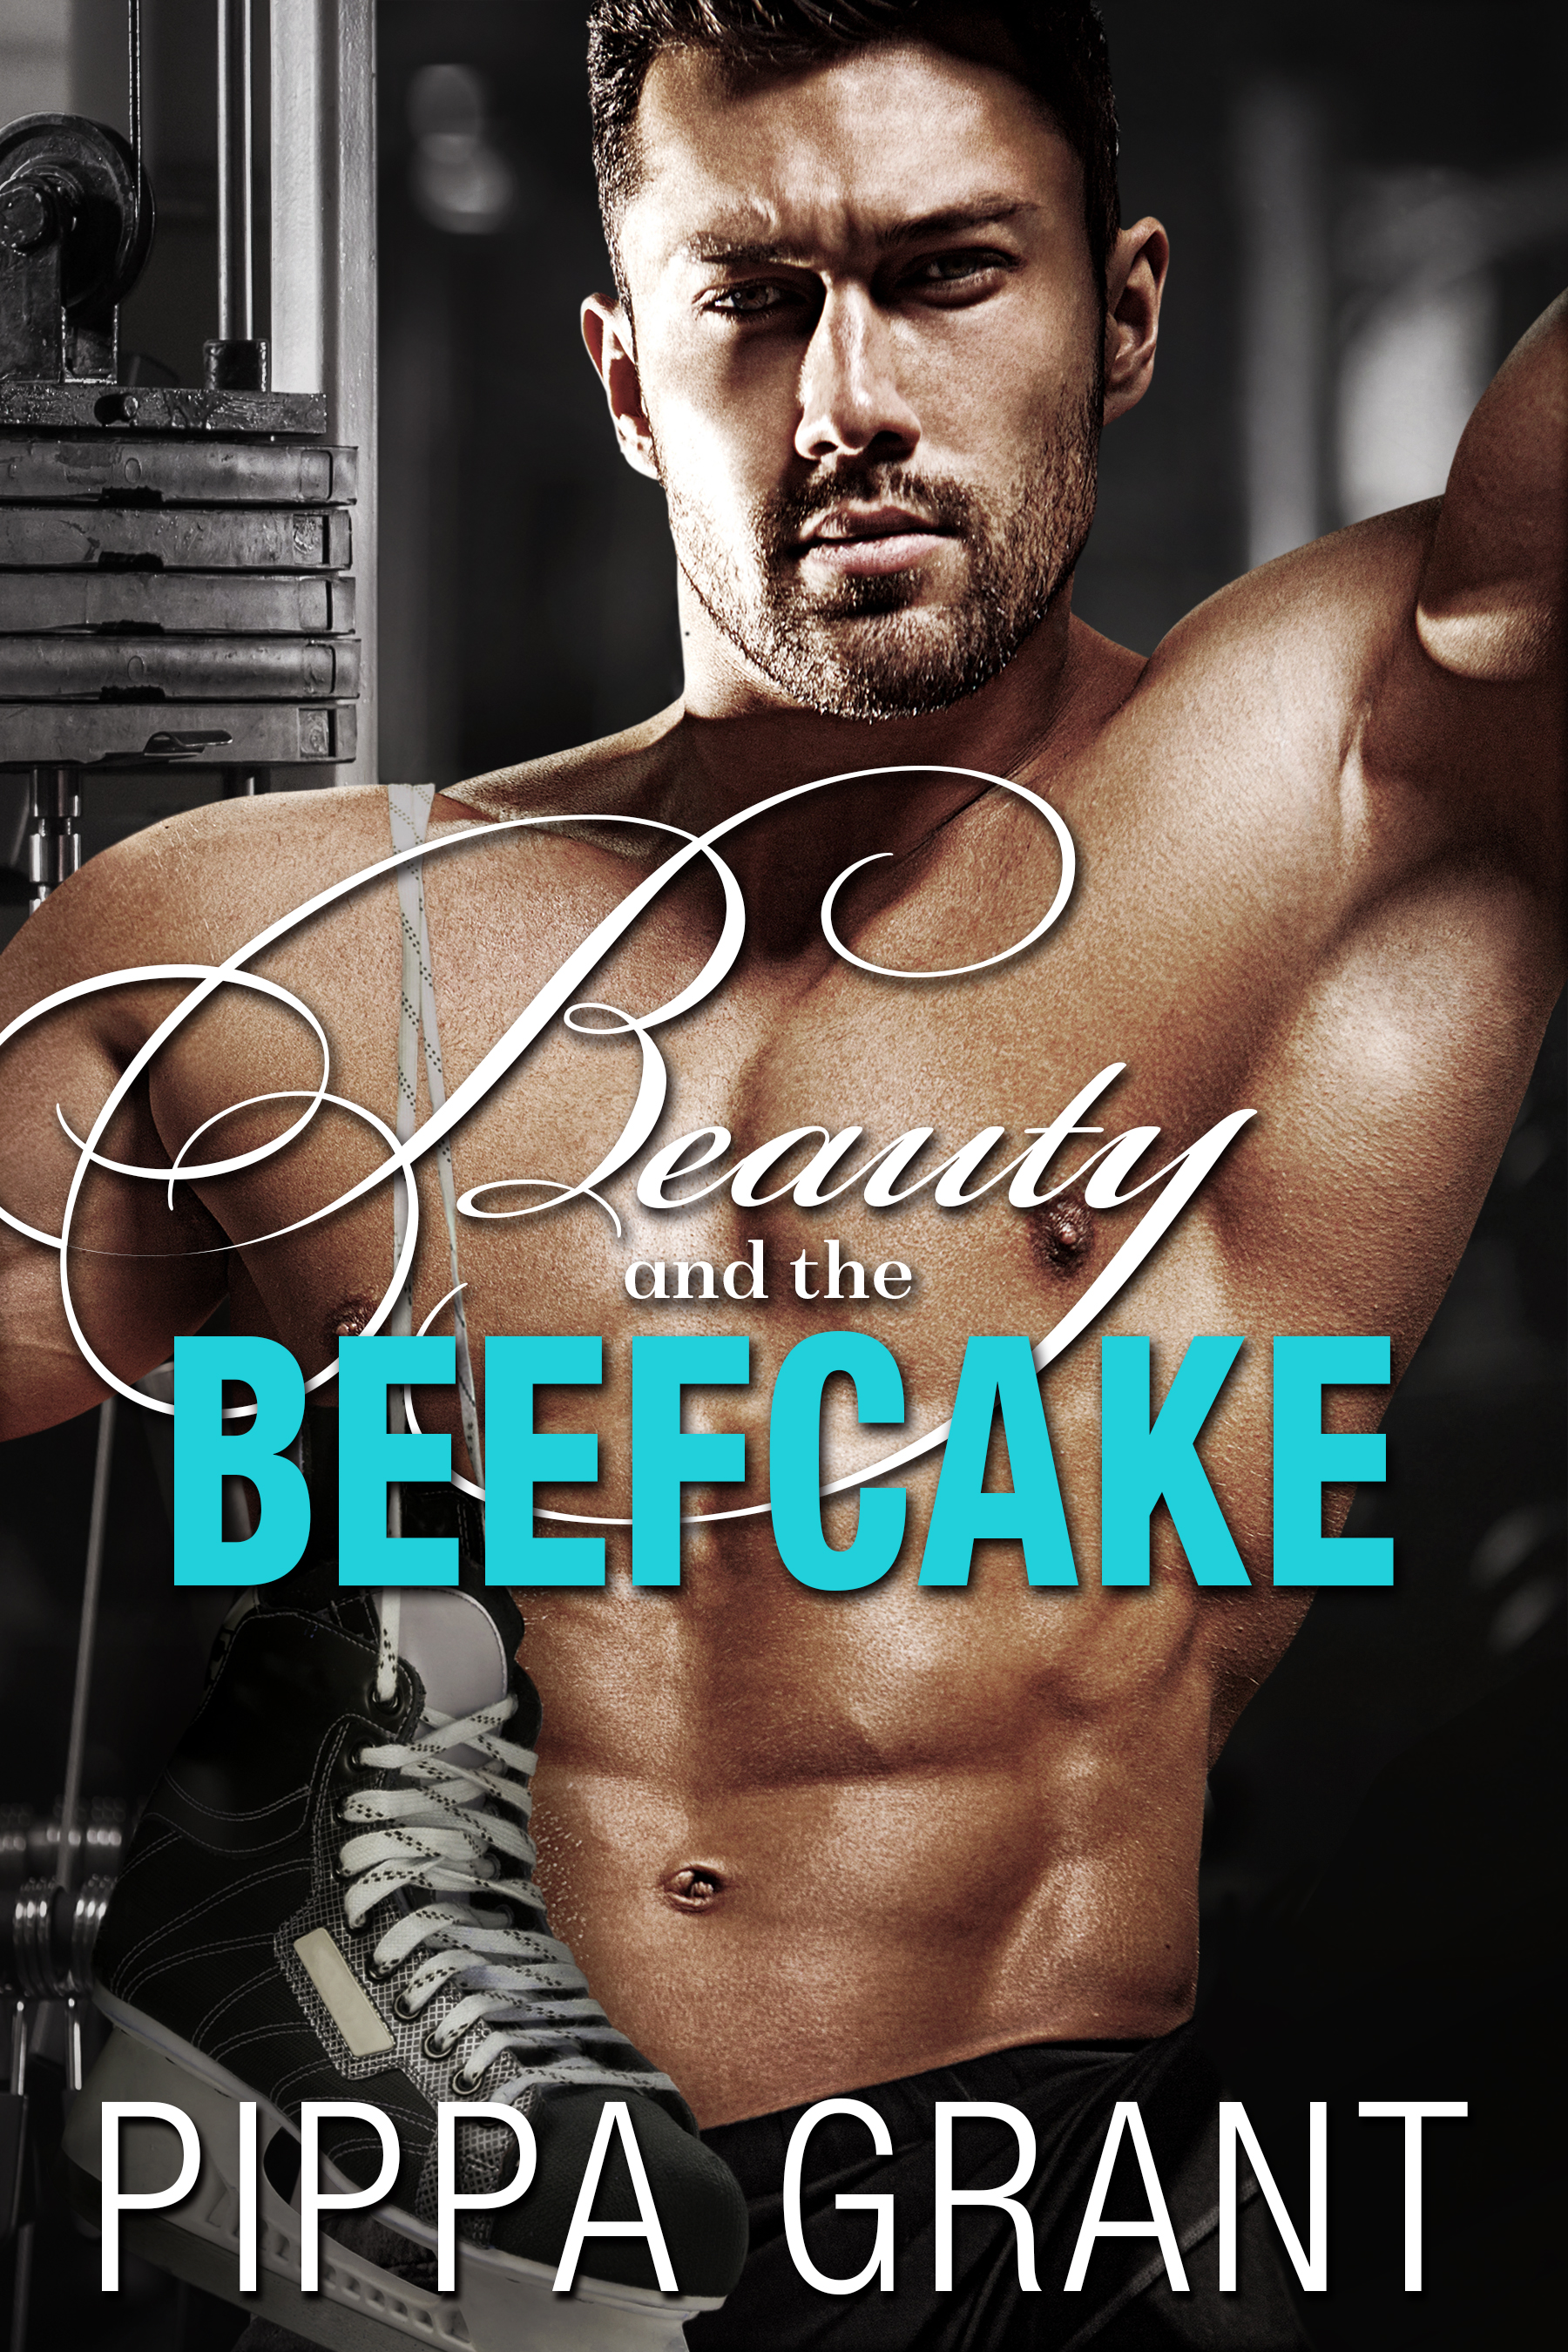 BEAUTY_BEEFCAKE_FINAL